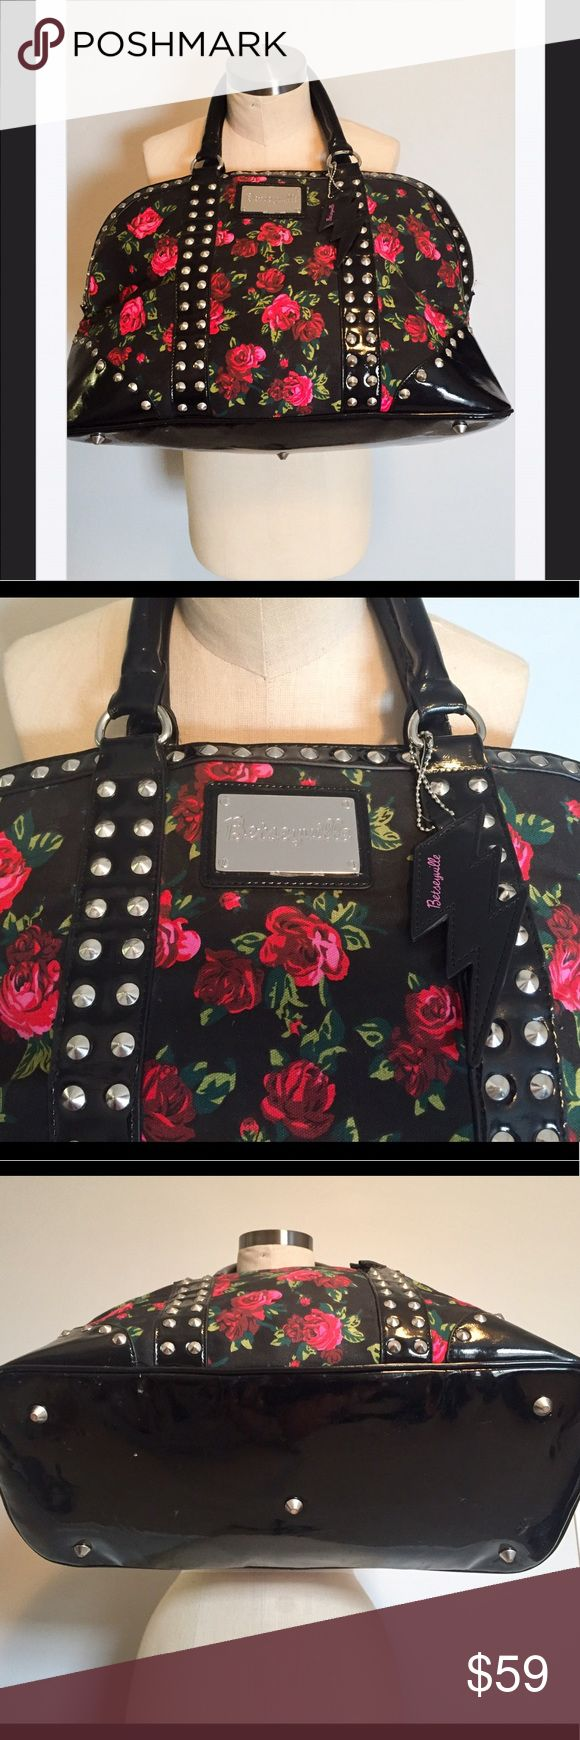 "Betseyville XL Studded Floral Tote Bag Amazing bag that is perfect for weekend getaways or just daily commuting! Lots of space to carry everything. Colors of black, red, and green with gorgeous silver studs throughout. Full zipper over the top. 22x14x8"". Still in very good condition from minimal use. From a smoke and pet free home. Bundle it with over 200 items for an additional 20% off or more! Betsey Johnson Bags Totes"